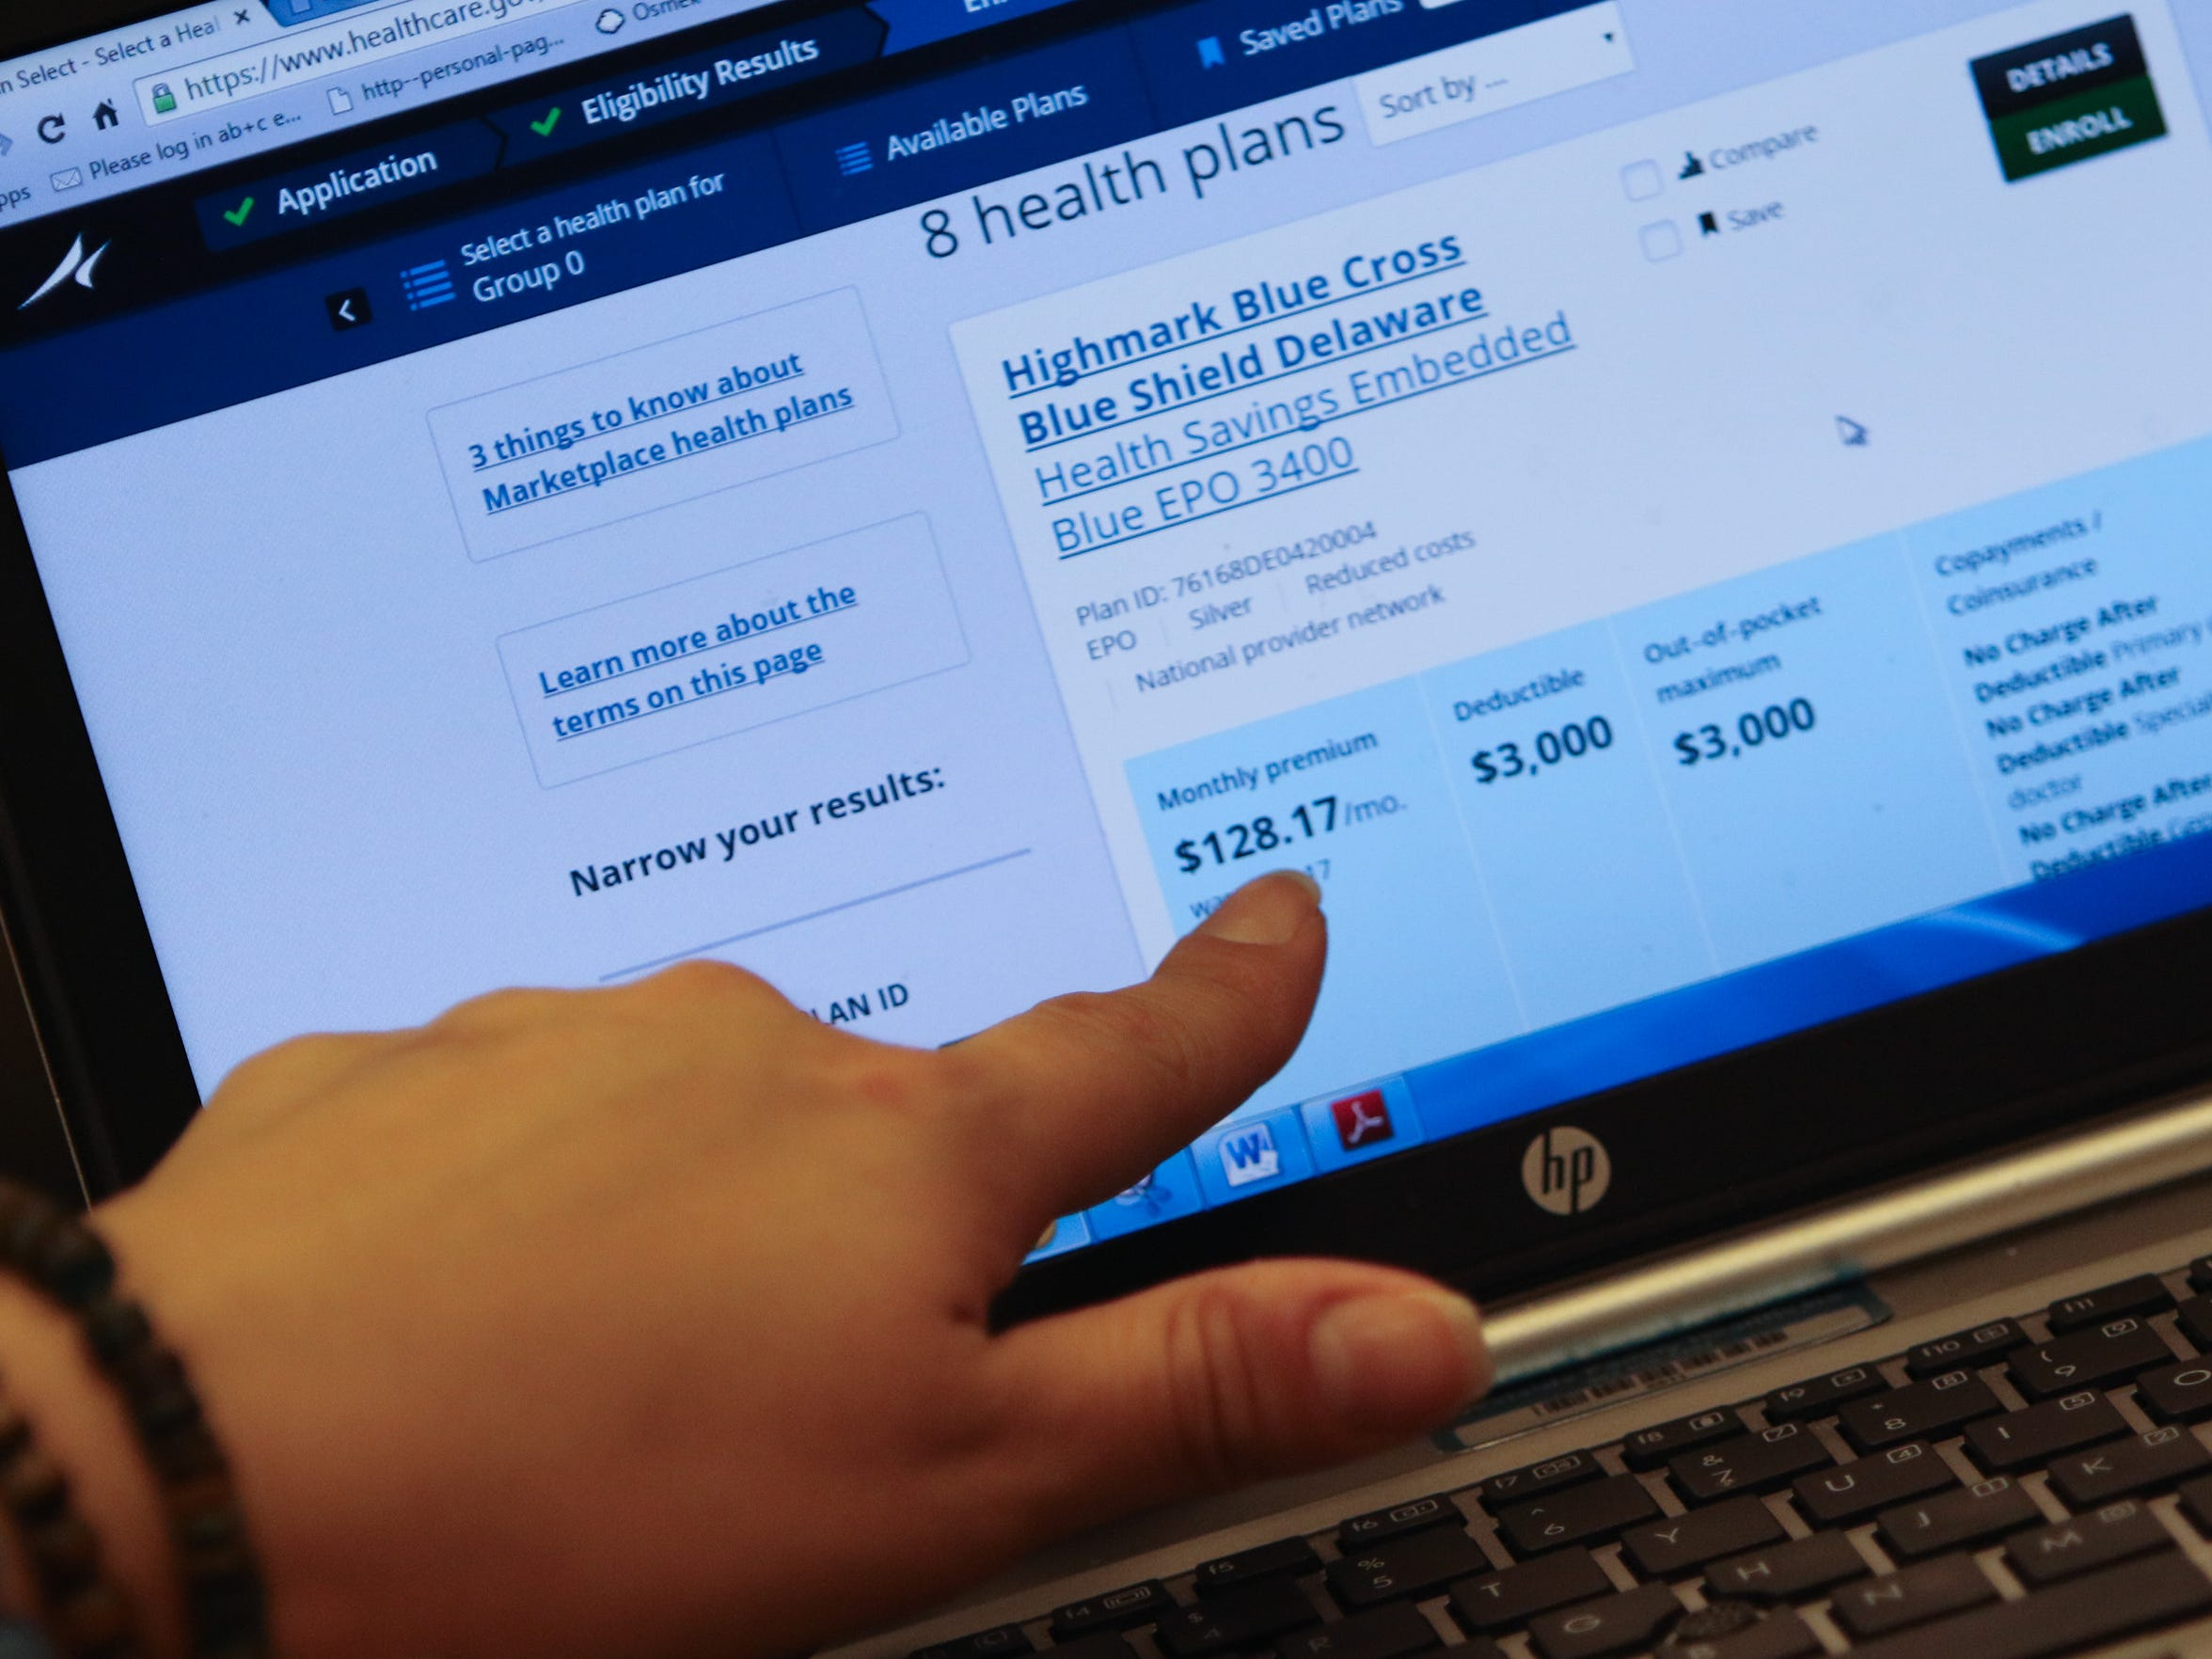 Sign up by Sunday for Obamacare coverage. Special exceptions may apply.